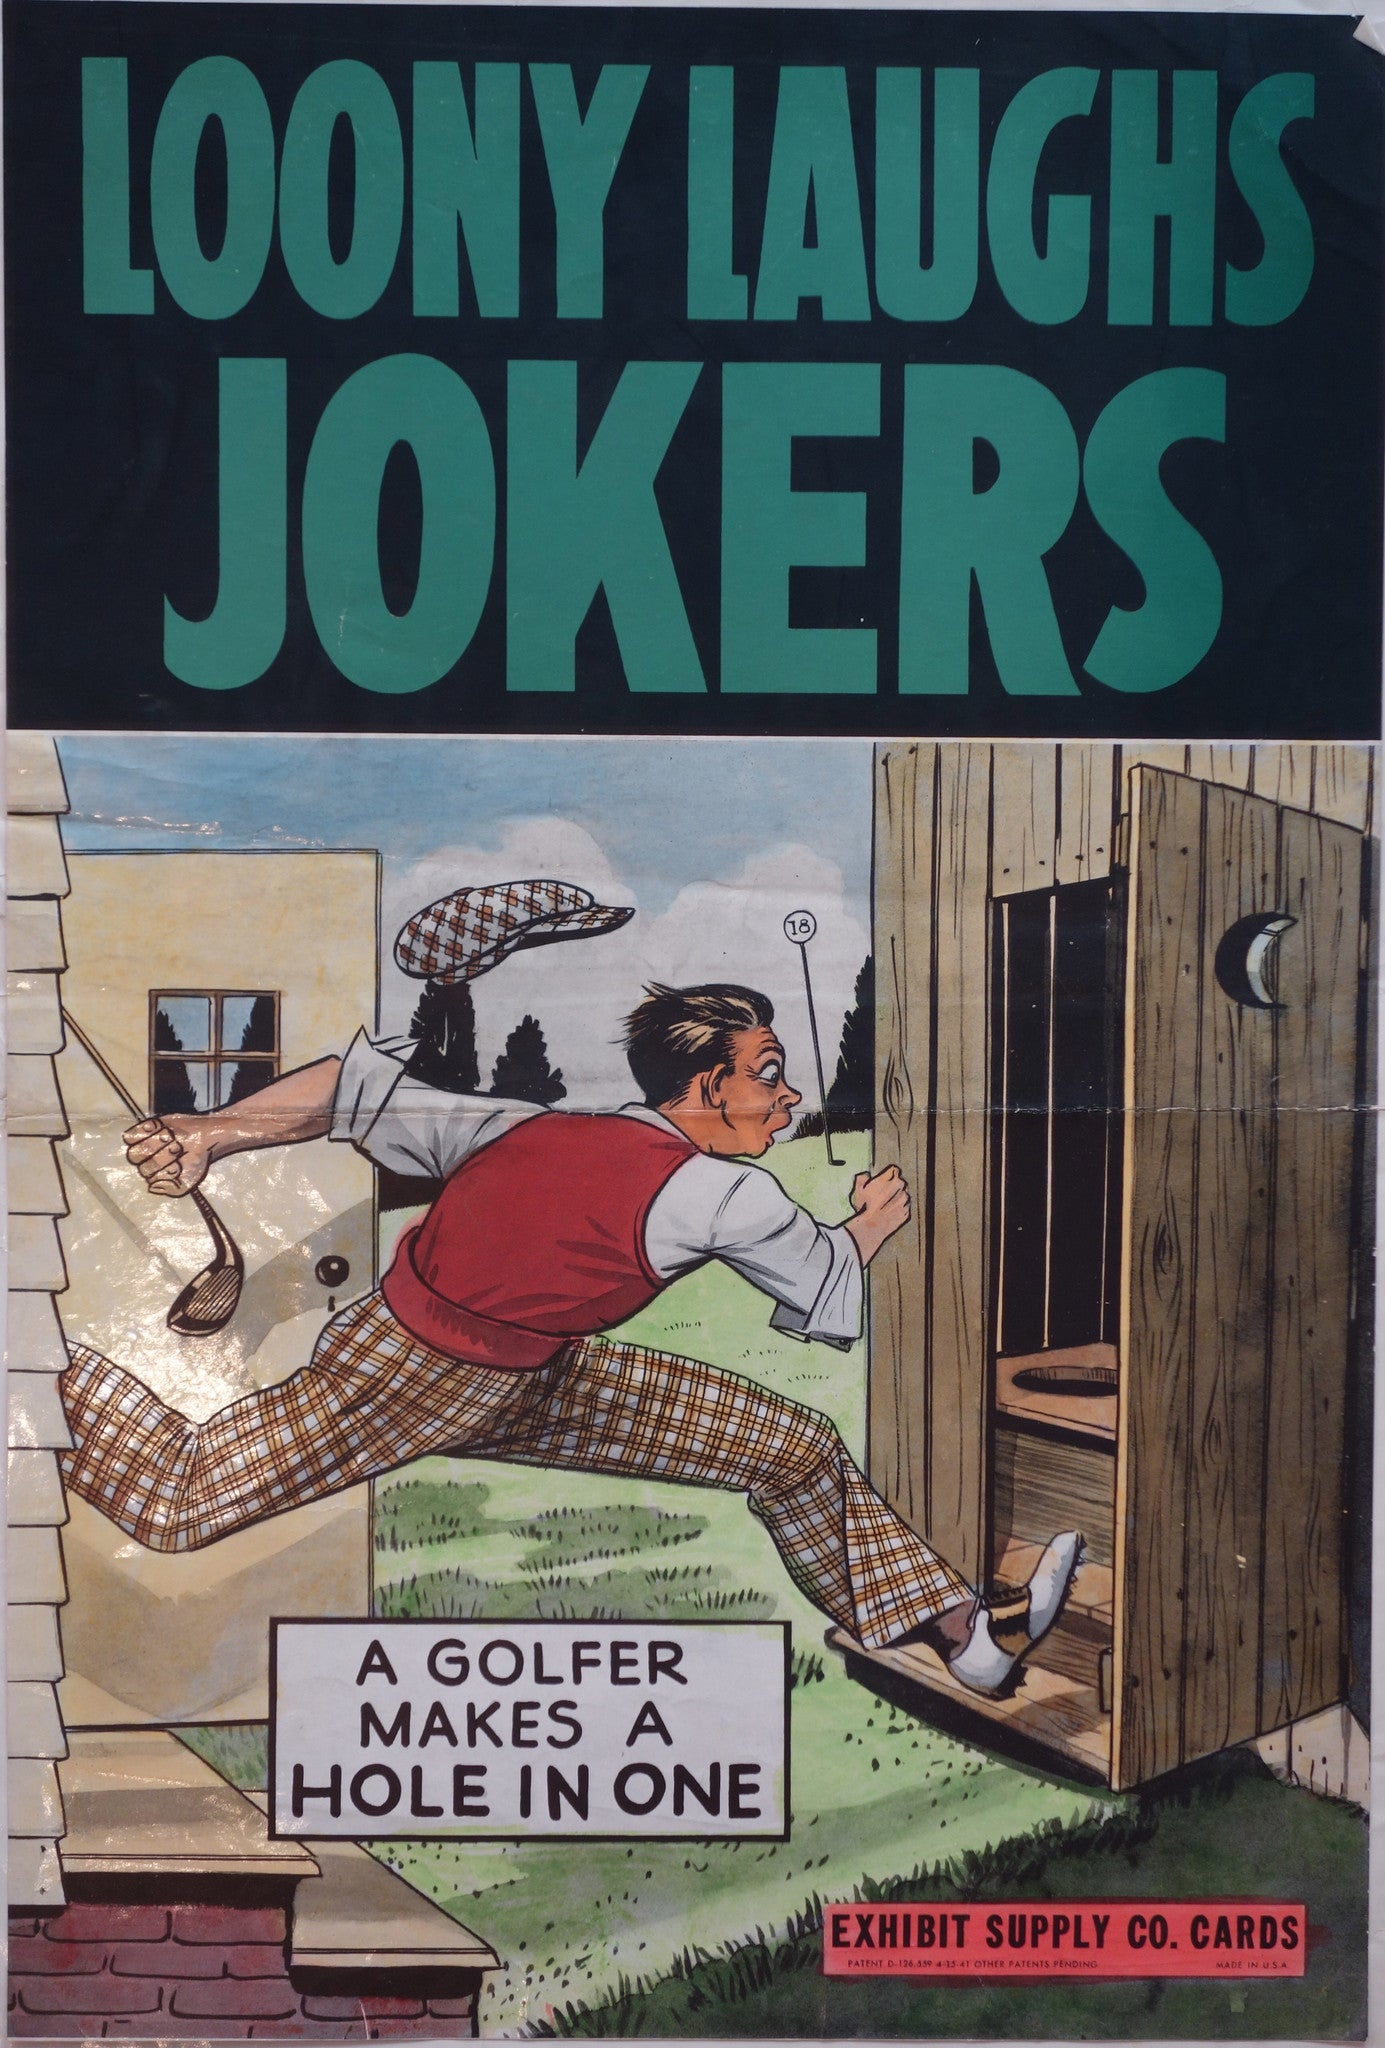 Loony Laughs Jokers